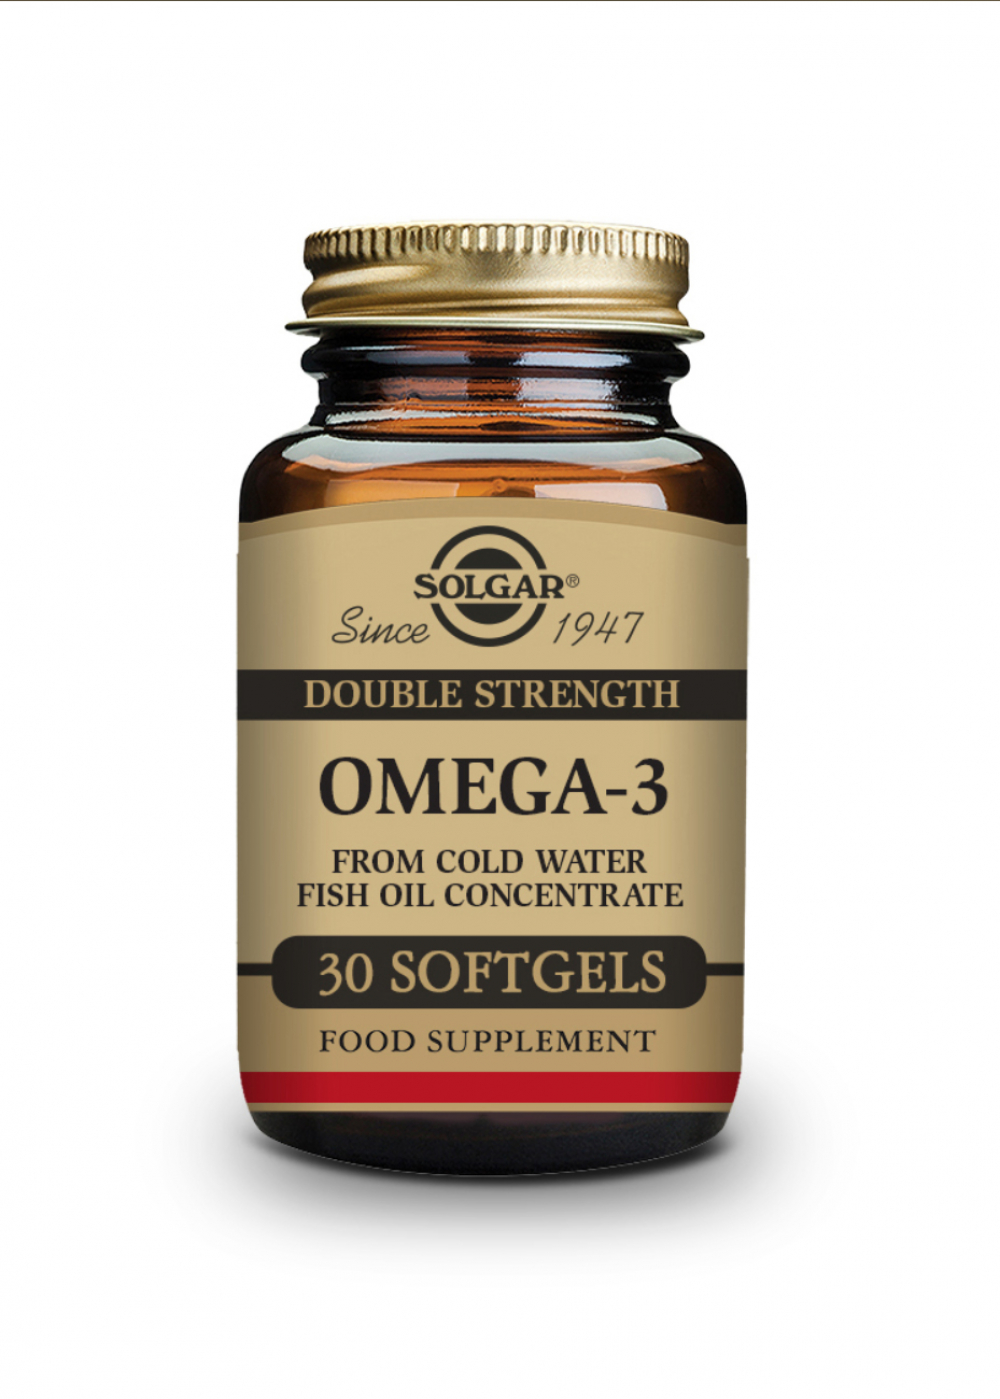 Solgar Double Strenght Omega-3 Fish Oil Concentrate 30 Softgels